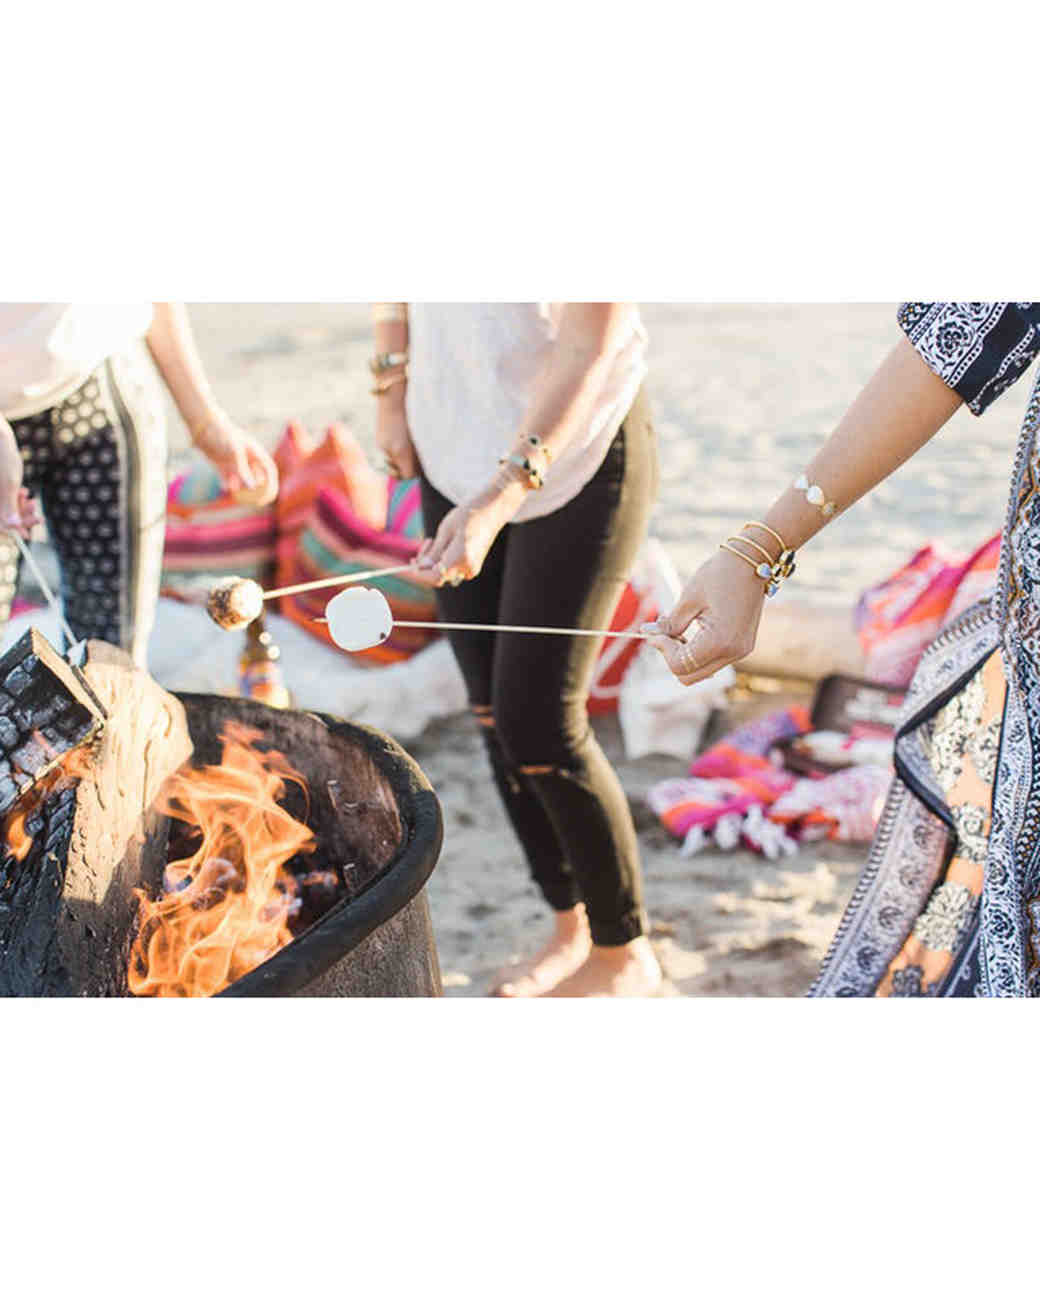 Beach Bonfire Bachelorette Party Theme